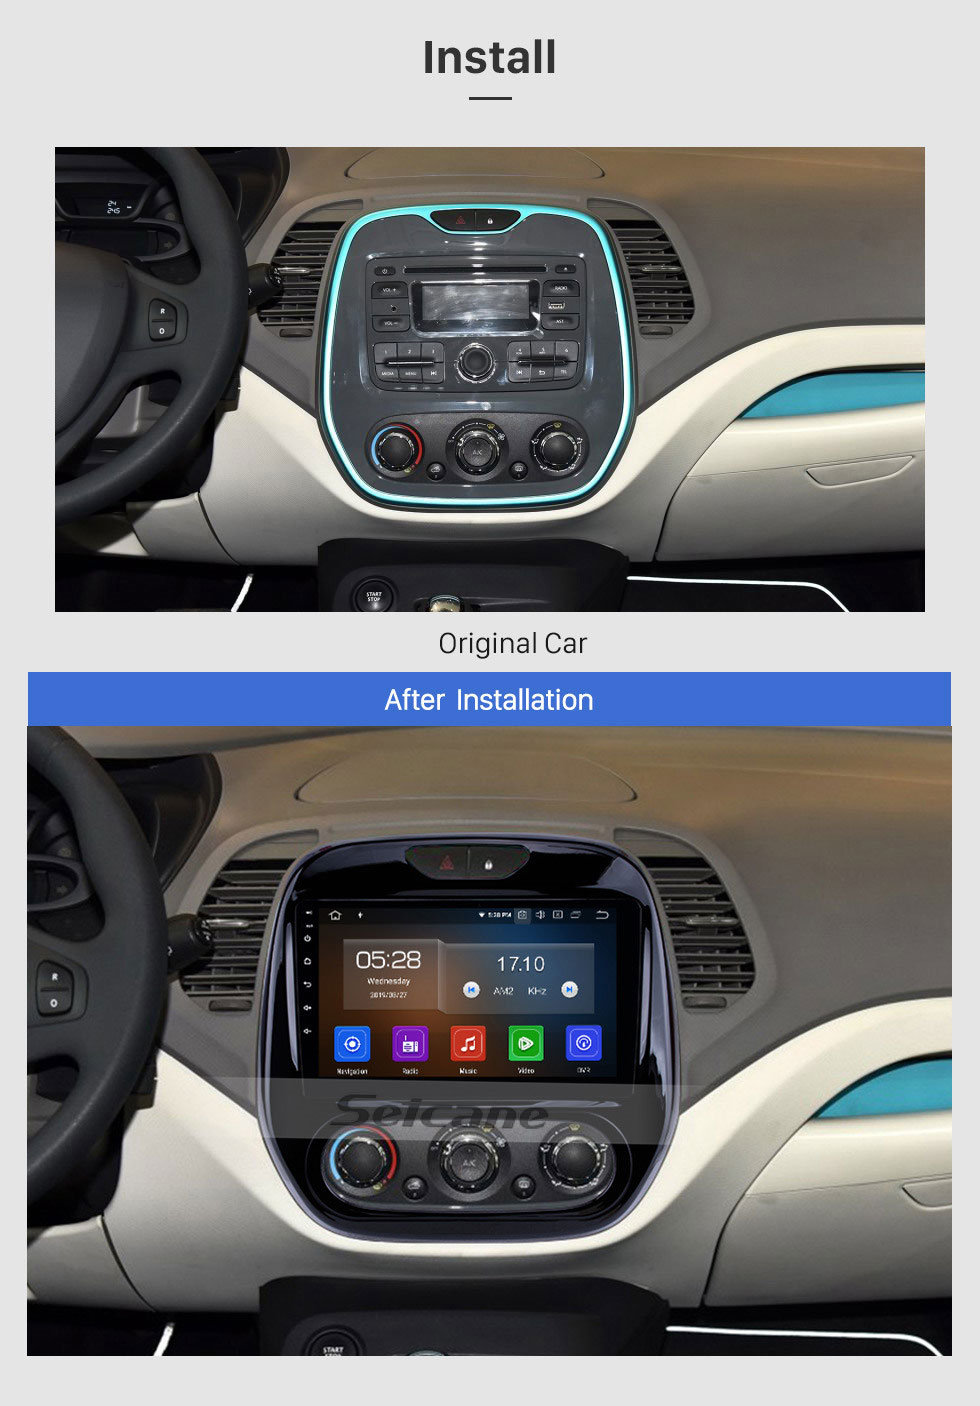 Seicane 9 Zoll Android 9.0 HD Touchscreen Head Unit GPS Navigationssystem für 2011-2016 Renault Captur CLIO Samsung QM3 Handbuch A / C Bluetooth Radio WIFI DVR Video USB Spiegel Link